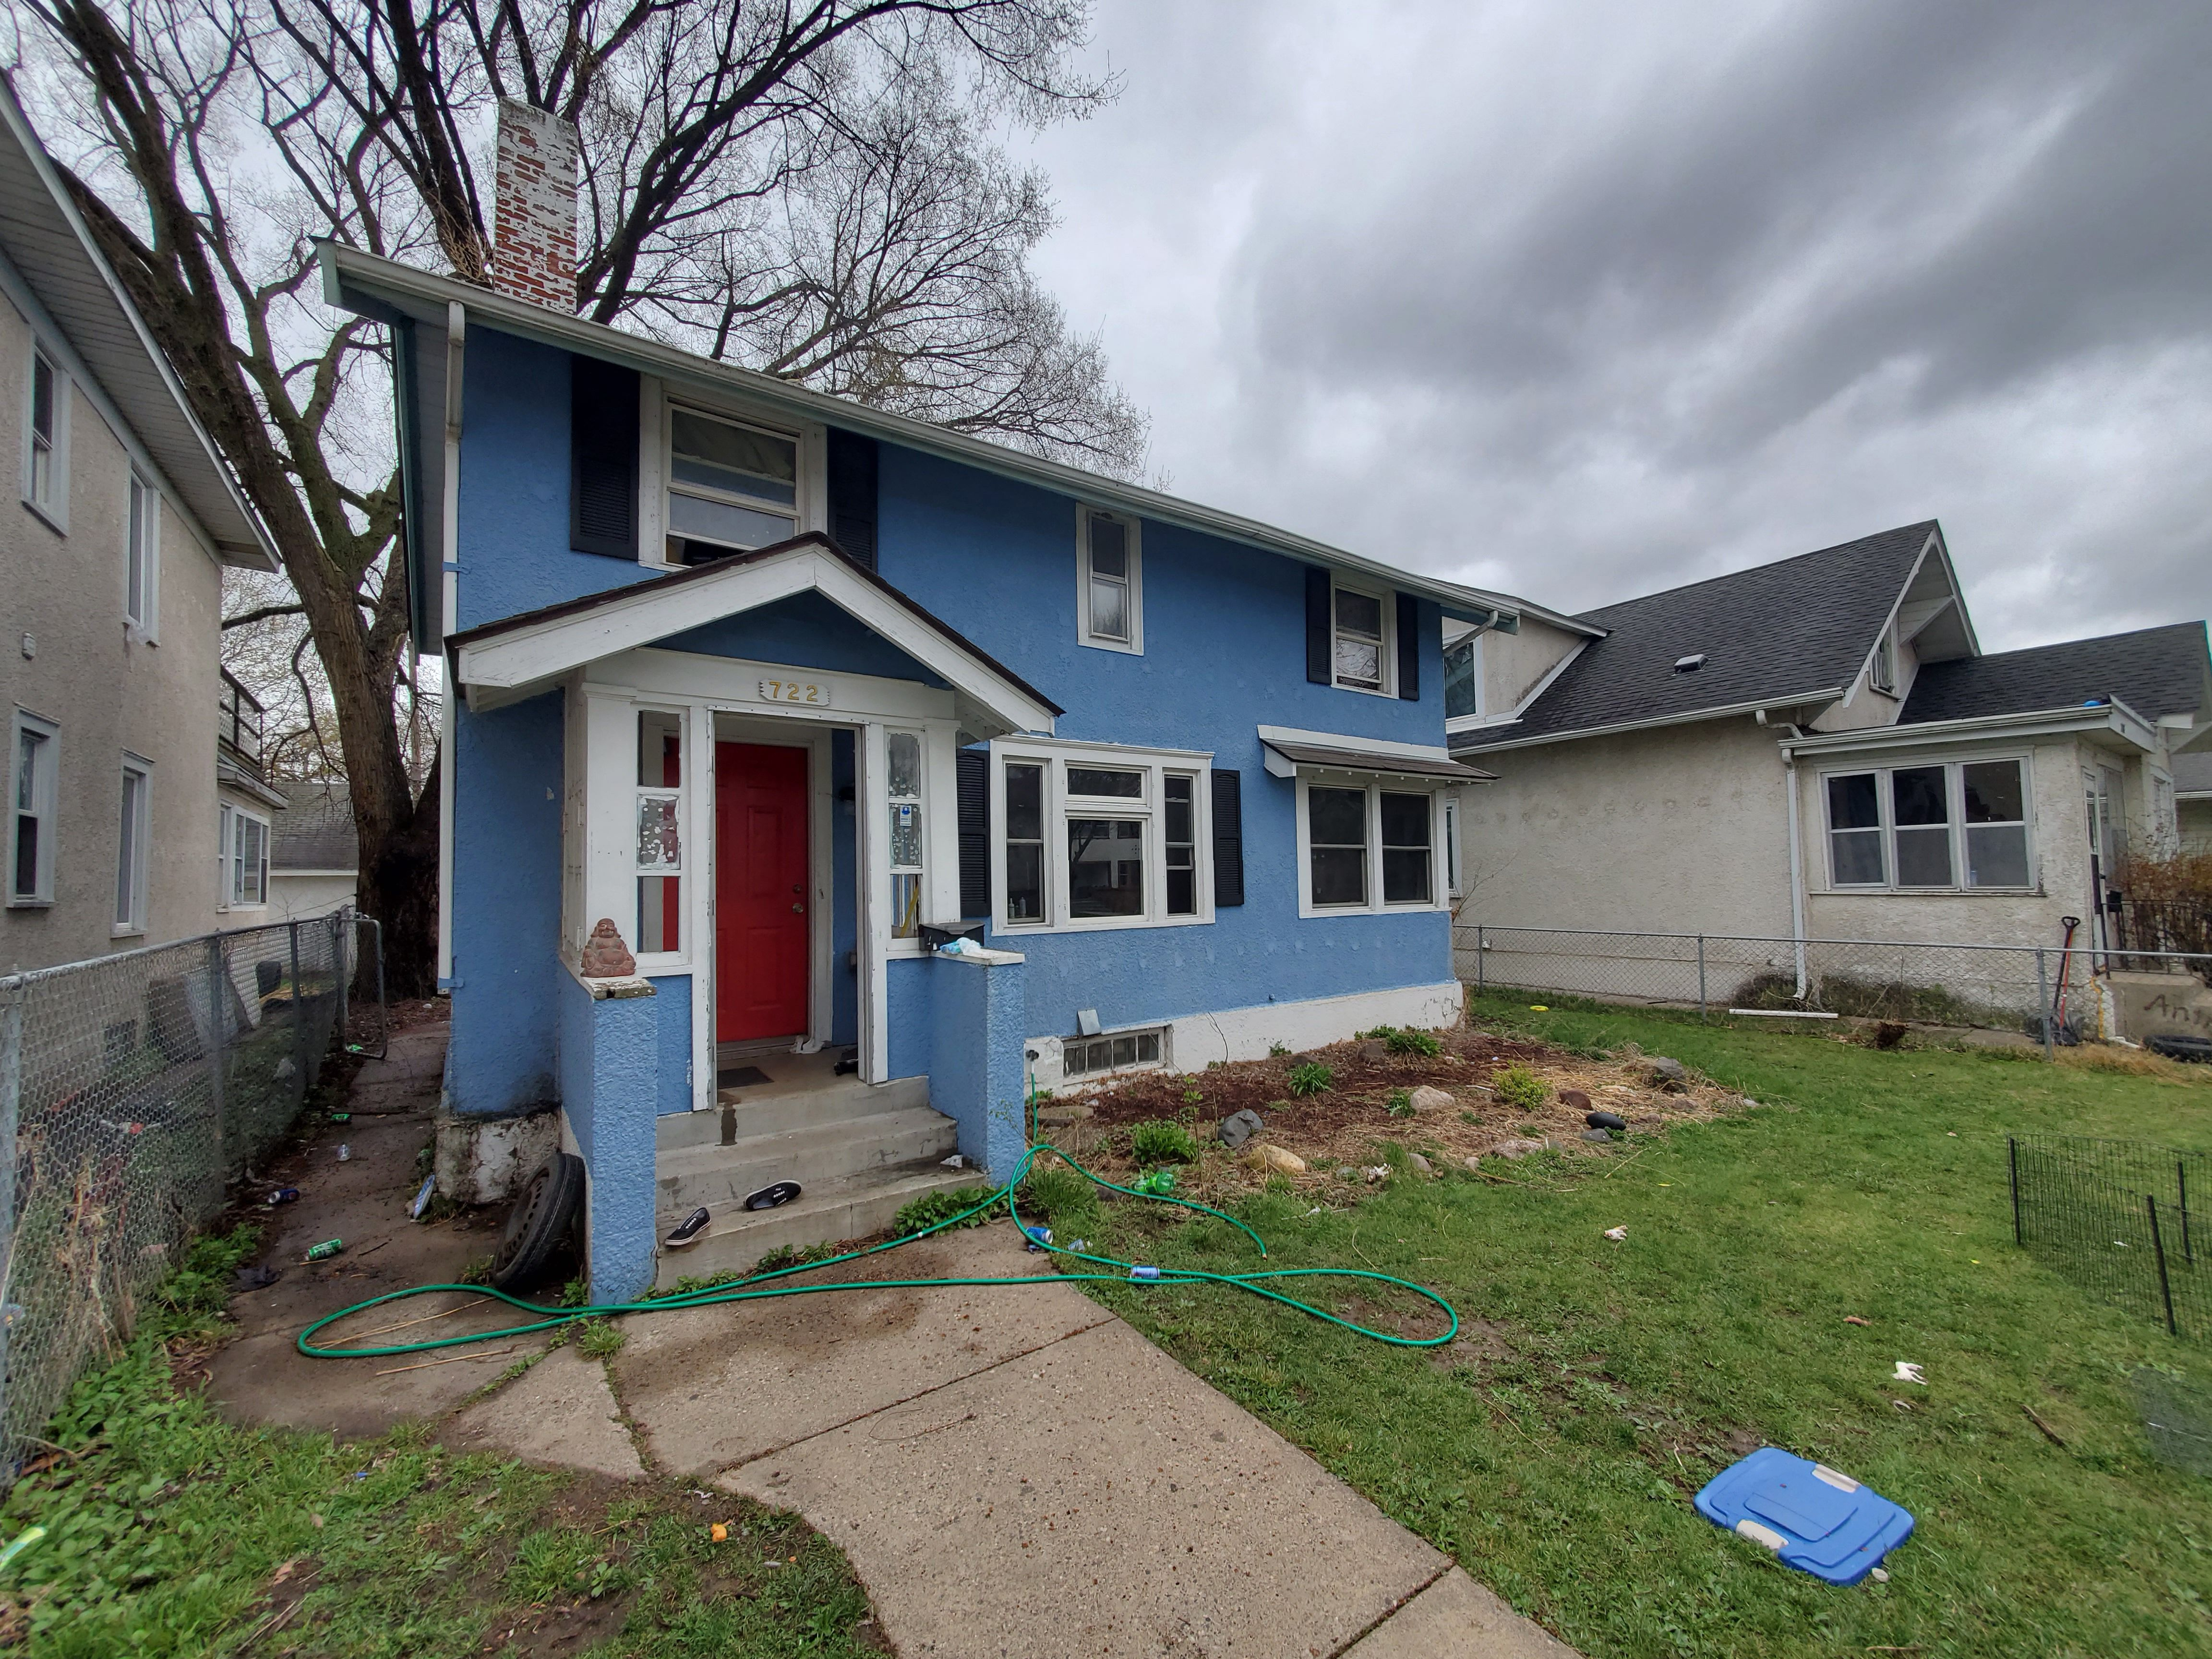 722 Oliver Ave N, Minneapolis, MN